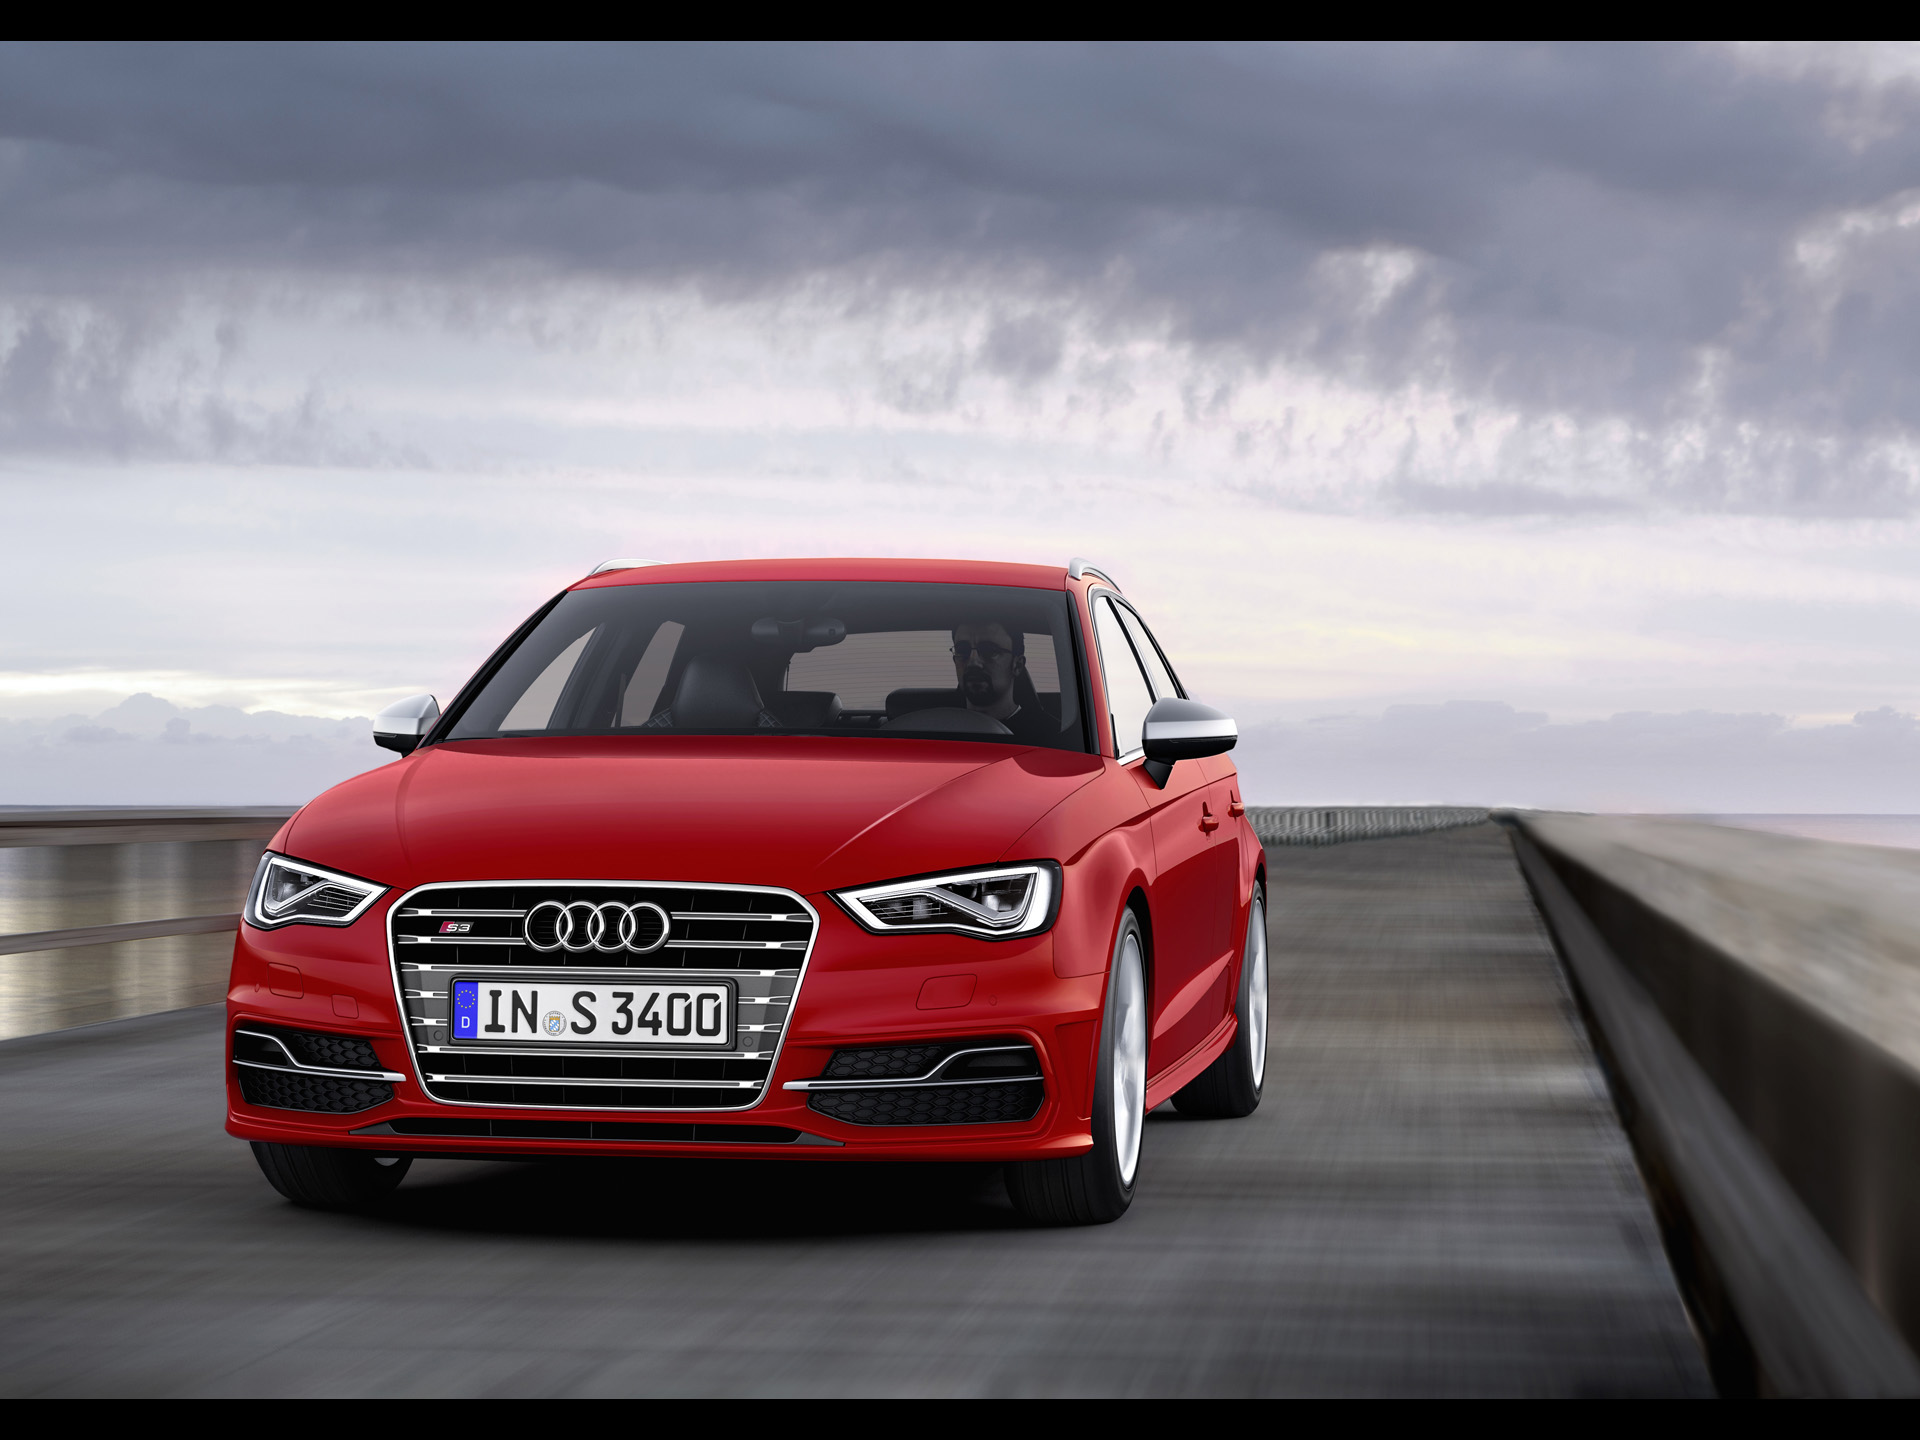 click to free download the wallpaper--Super Car Image of Audi S3, Seen from Front Angle, It is Impressive in Pretty Everything 1920X1440 free wallpaper download